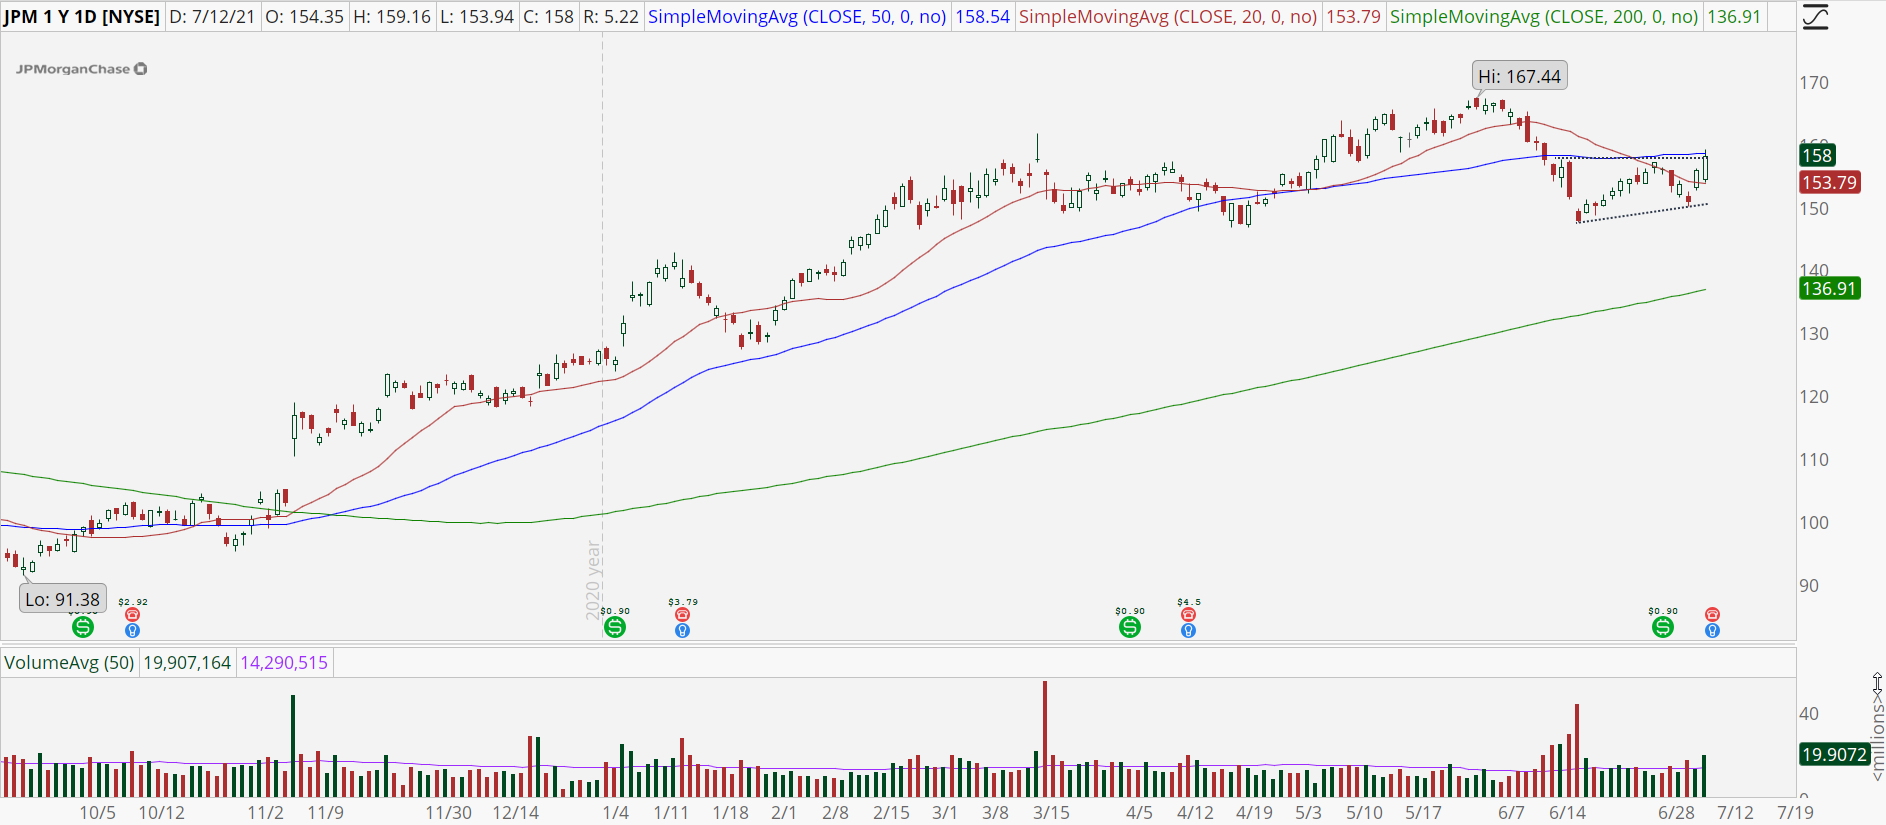 JPMorgan Chase (JPM) stock chart with ascending triangle breakout.